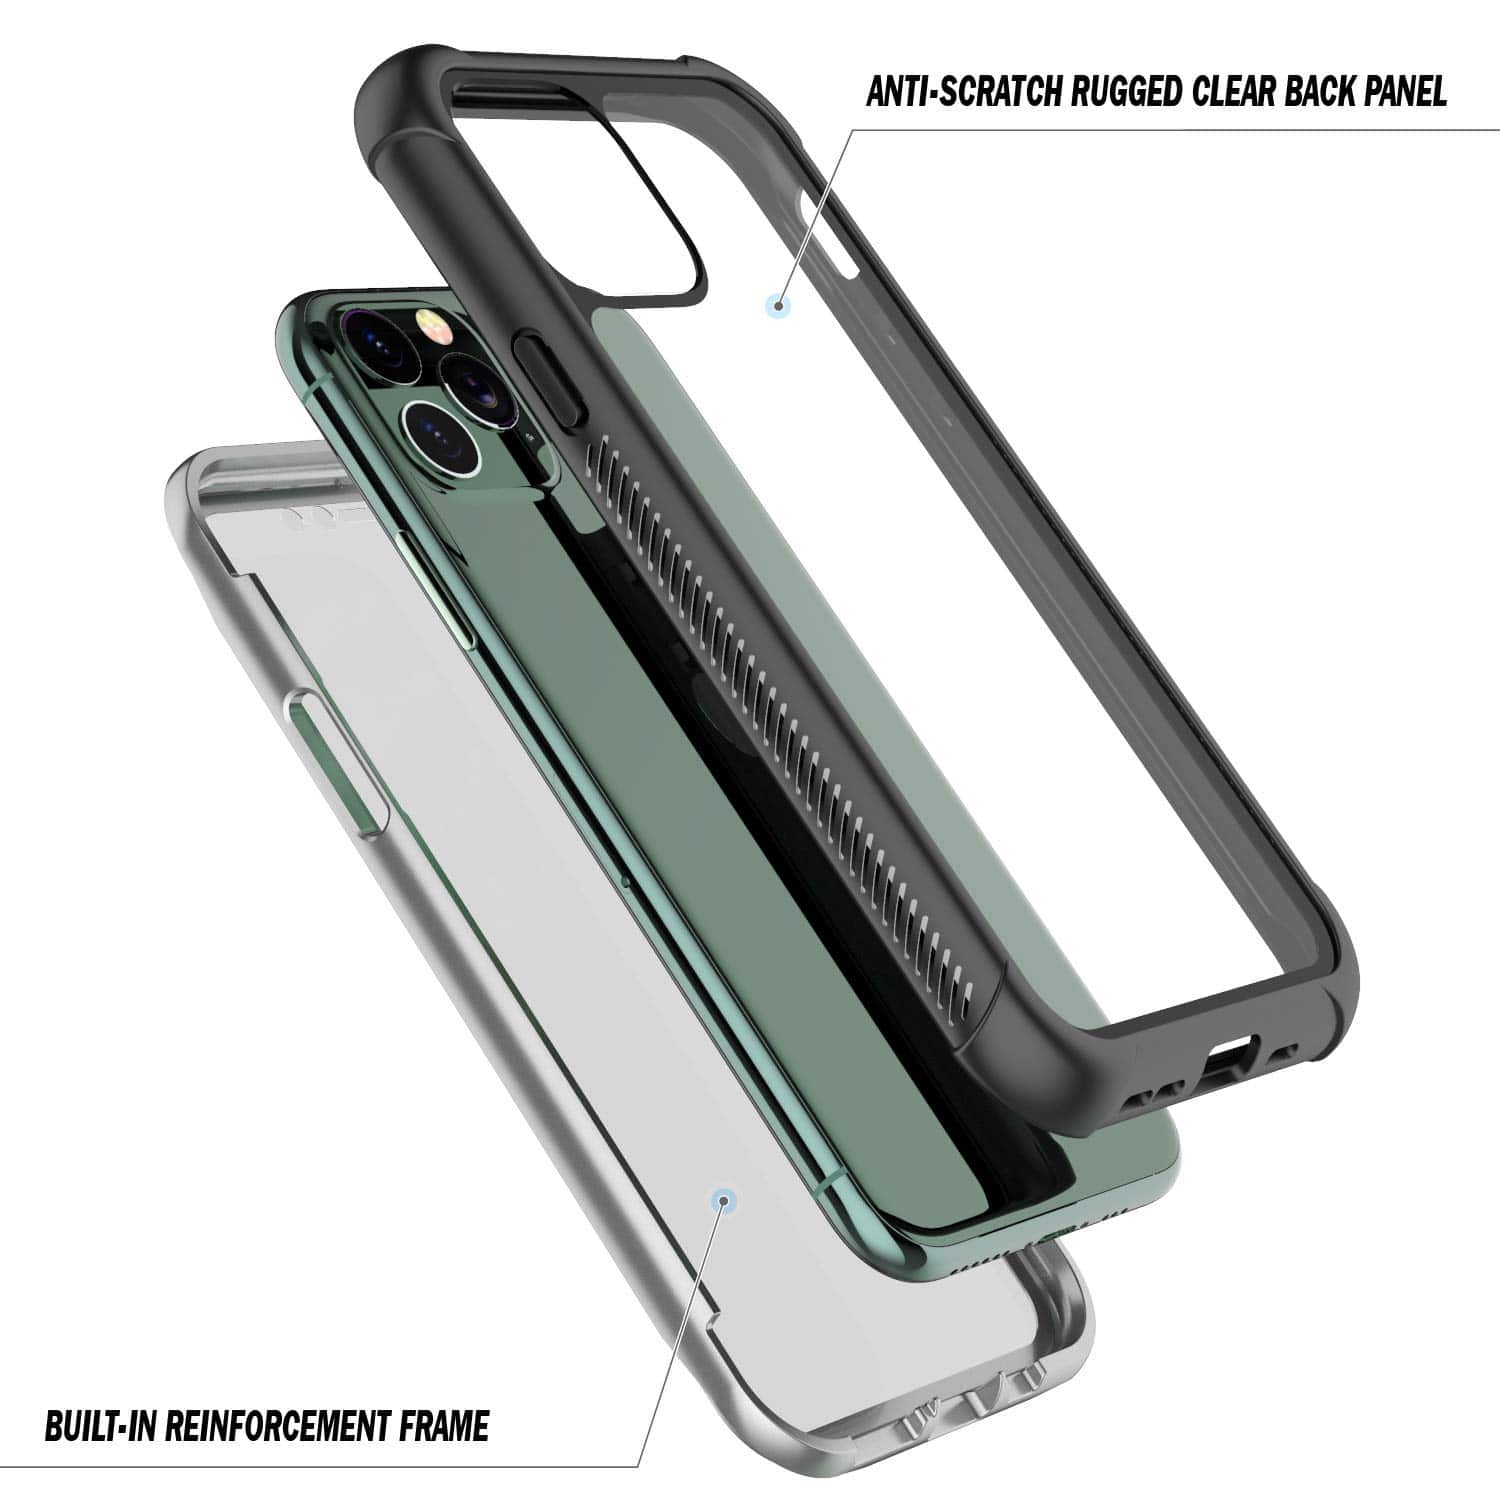 SPIDERCASE iPhone 11 Pro Max Case, Built-in Screen Protector Full Heavy Duty Protection Shockproof Anti-Scratched Rugged Case for iPhone 11 Pro Max 6.5 inch 2019 (Black Clear)